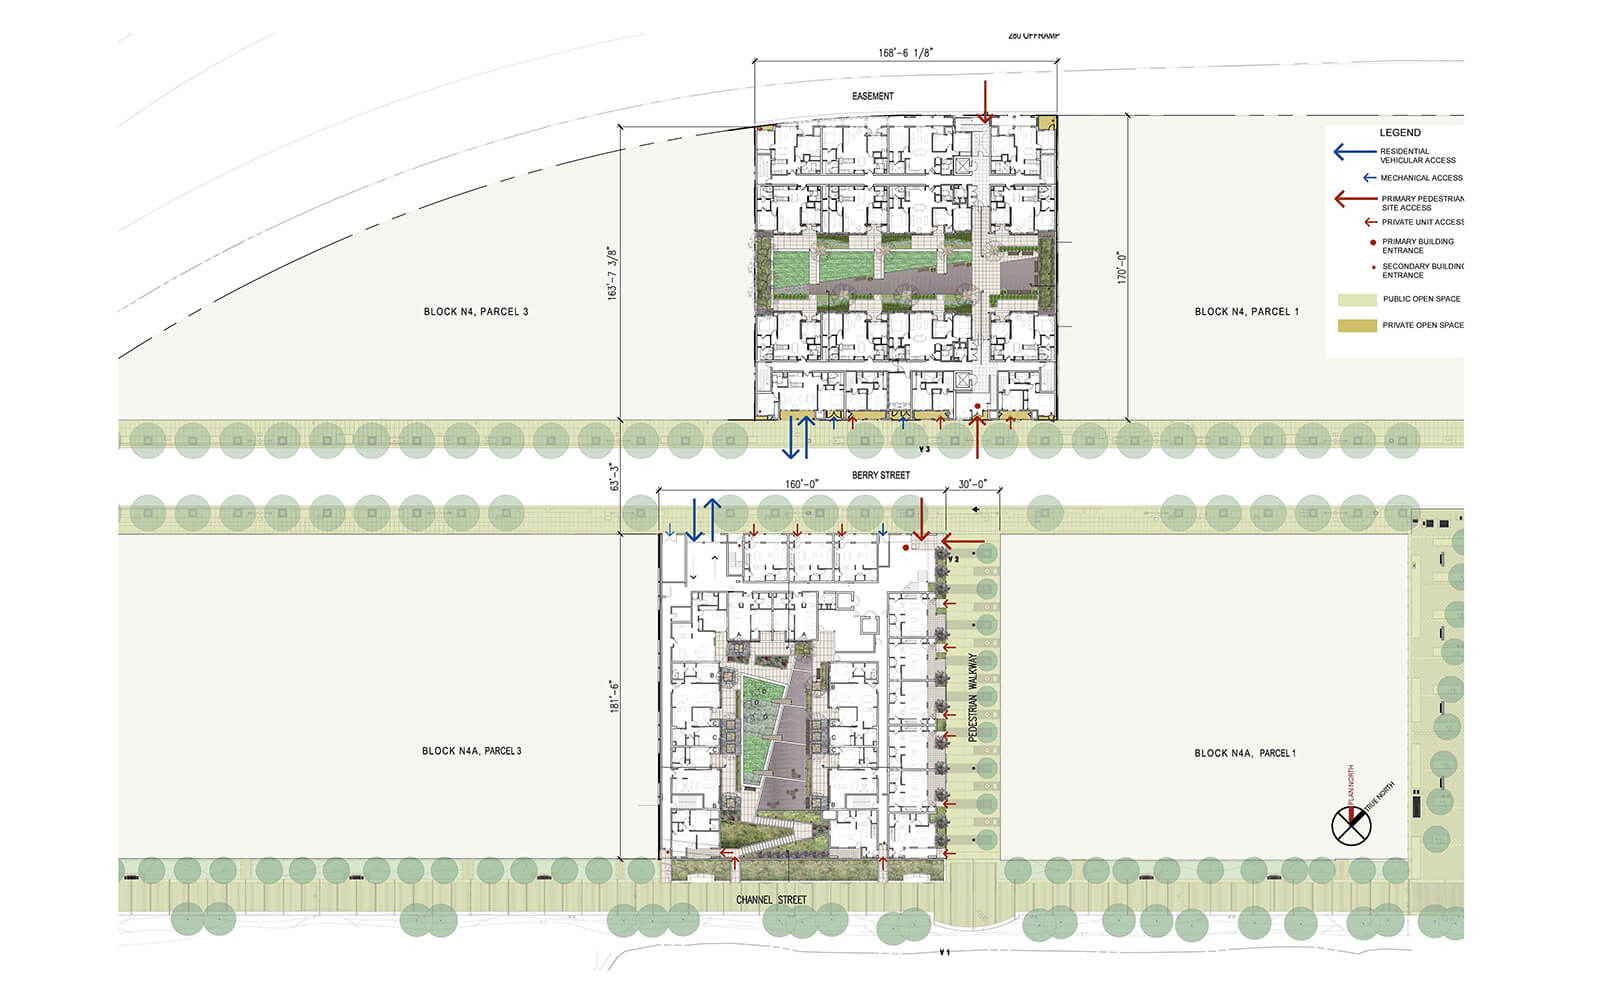 studio vara multifamily mission walk drawing plan